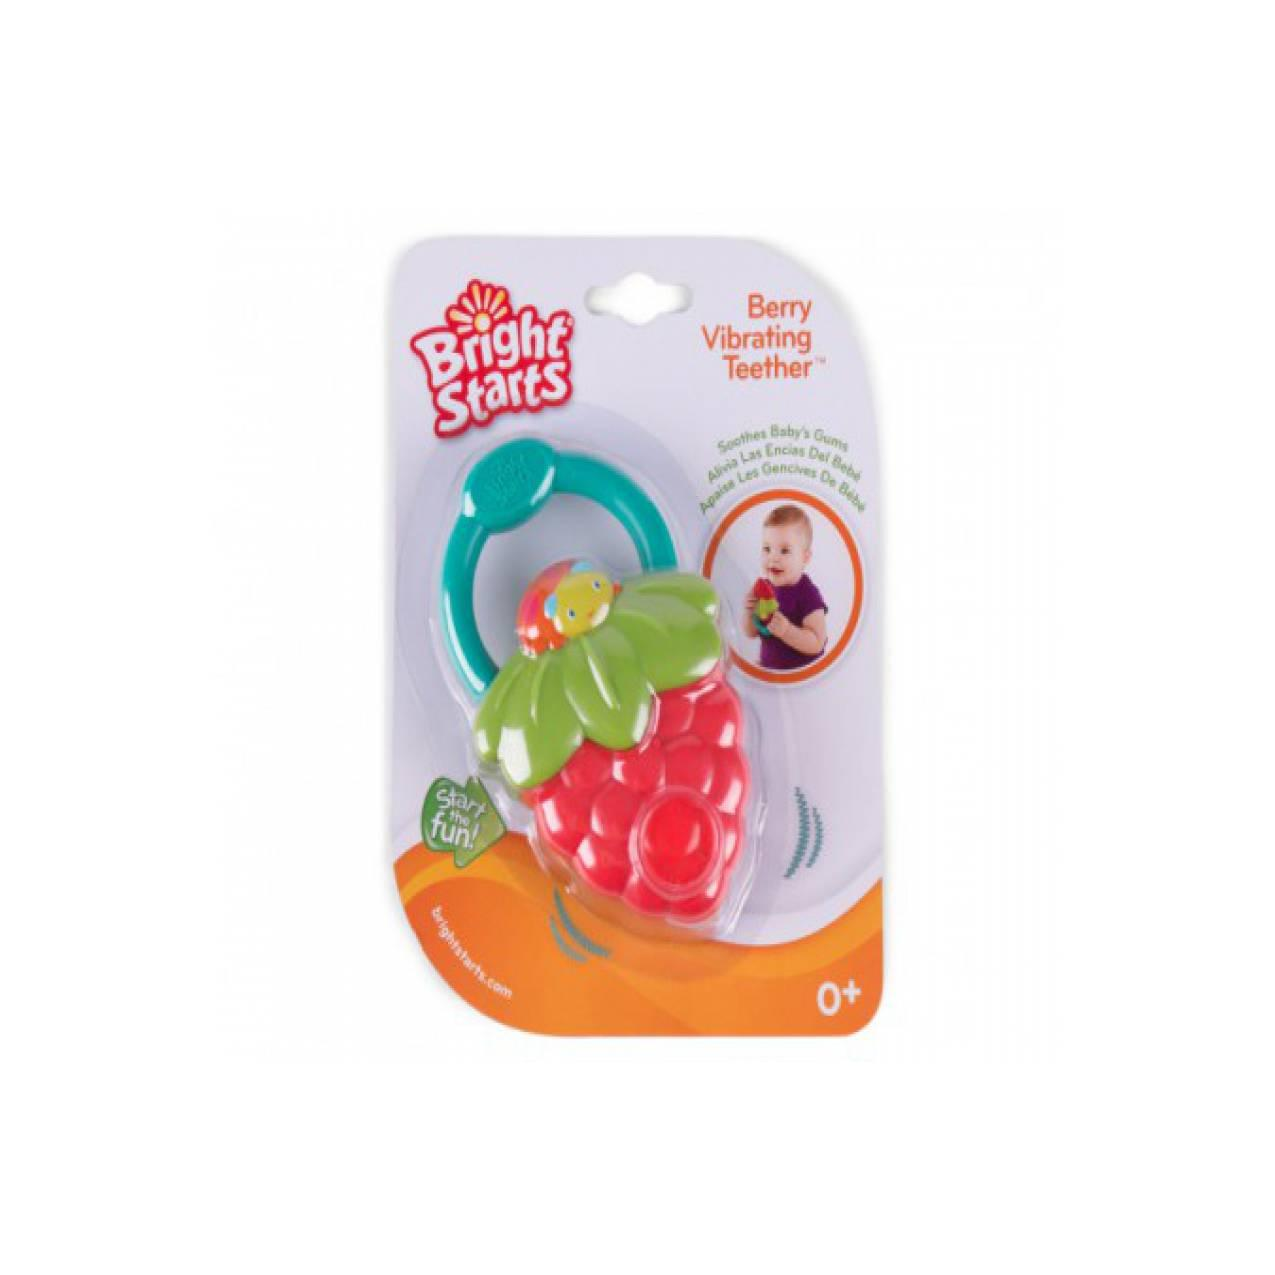 Berry Vibrating Teether